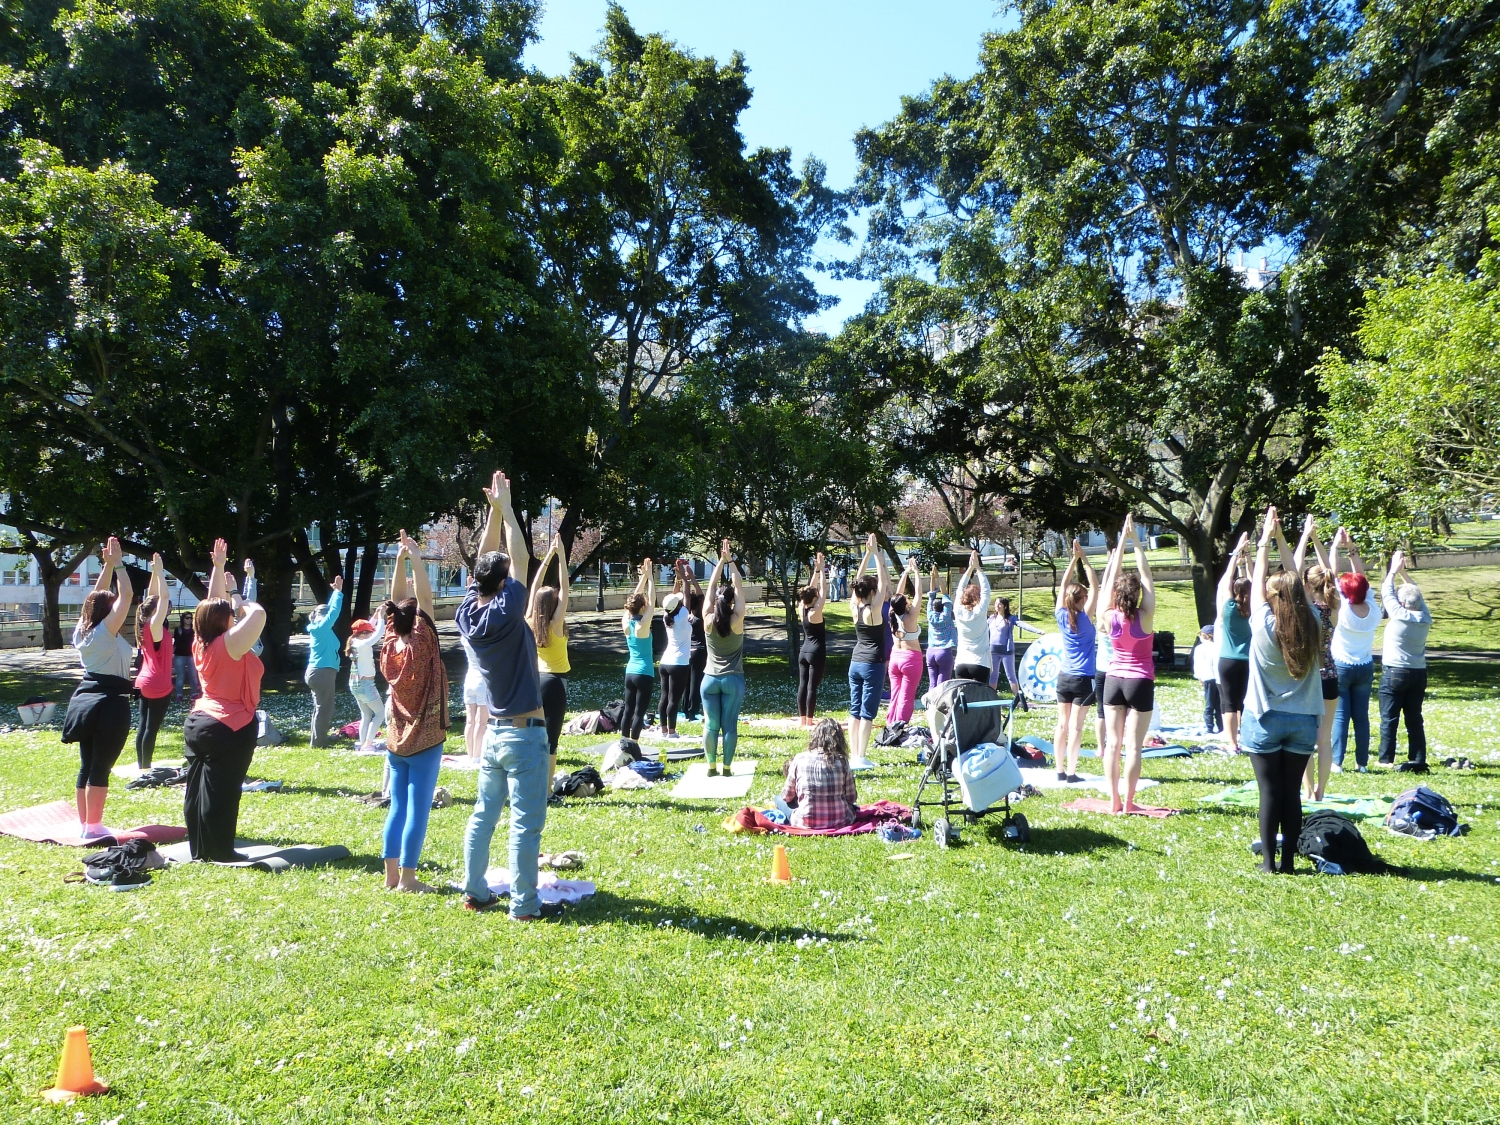 Yoga Sámkhya class at the event 'Há Festa no Parque' organized by the City Hall of Lisbon on the occasion of the commemorations of April the 25th - 2016